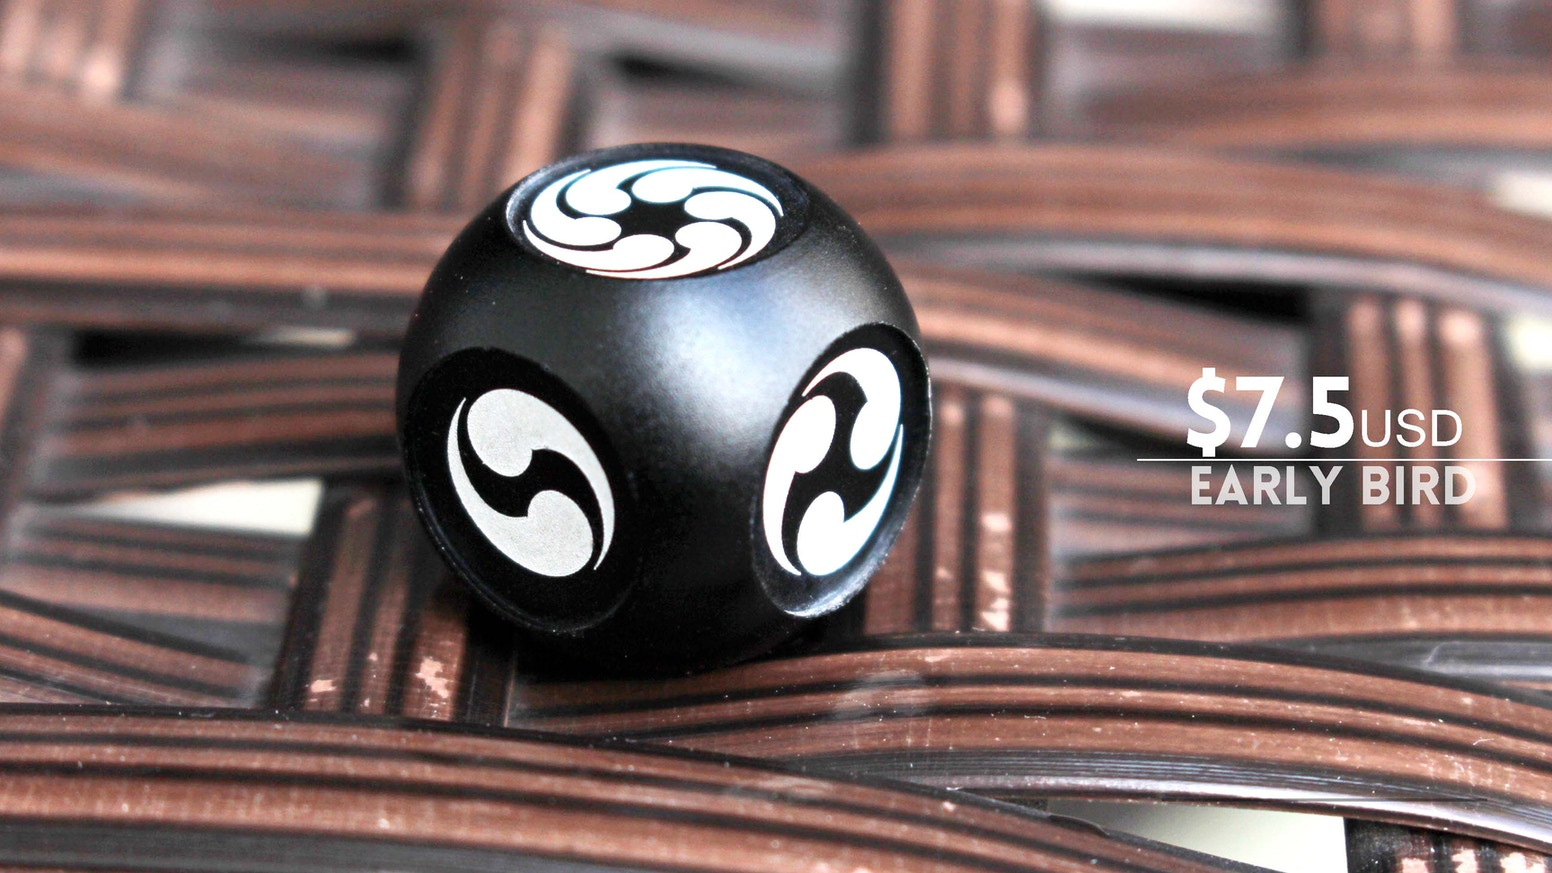 Magatama Dice Aluminum Dice With East Asian Symbols By Anvi Dice